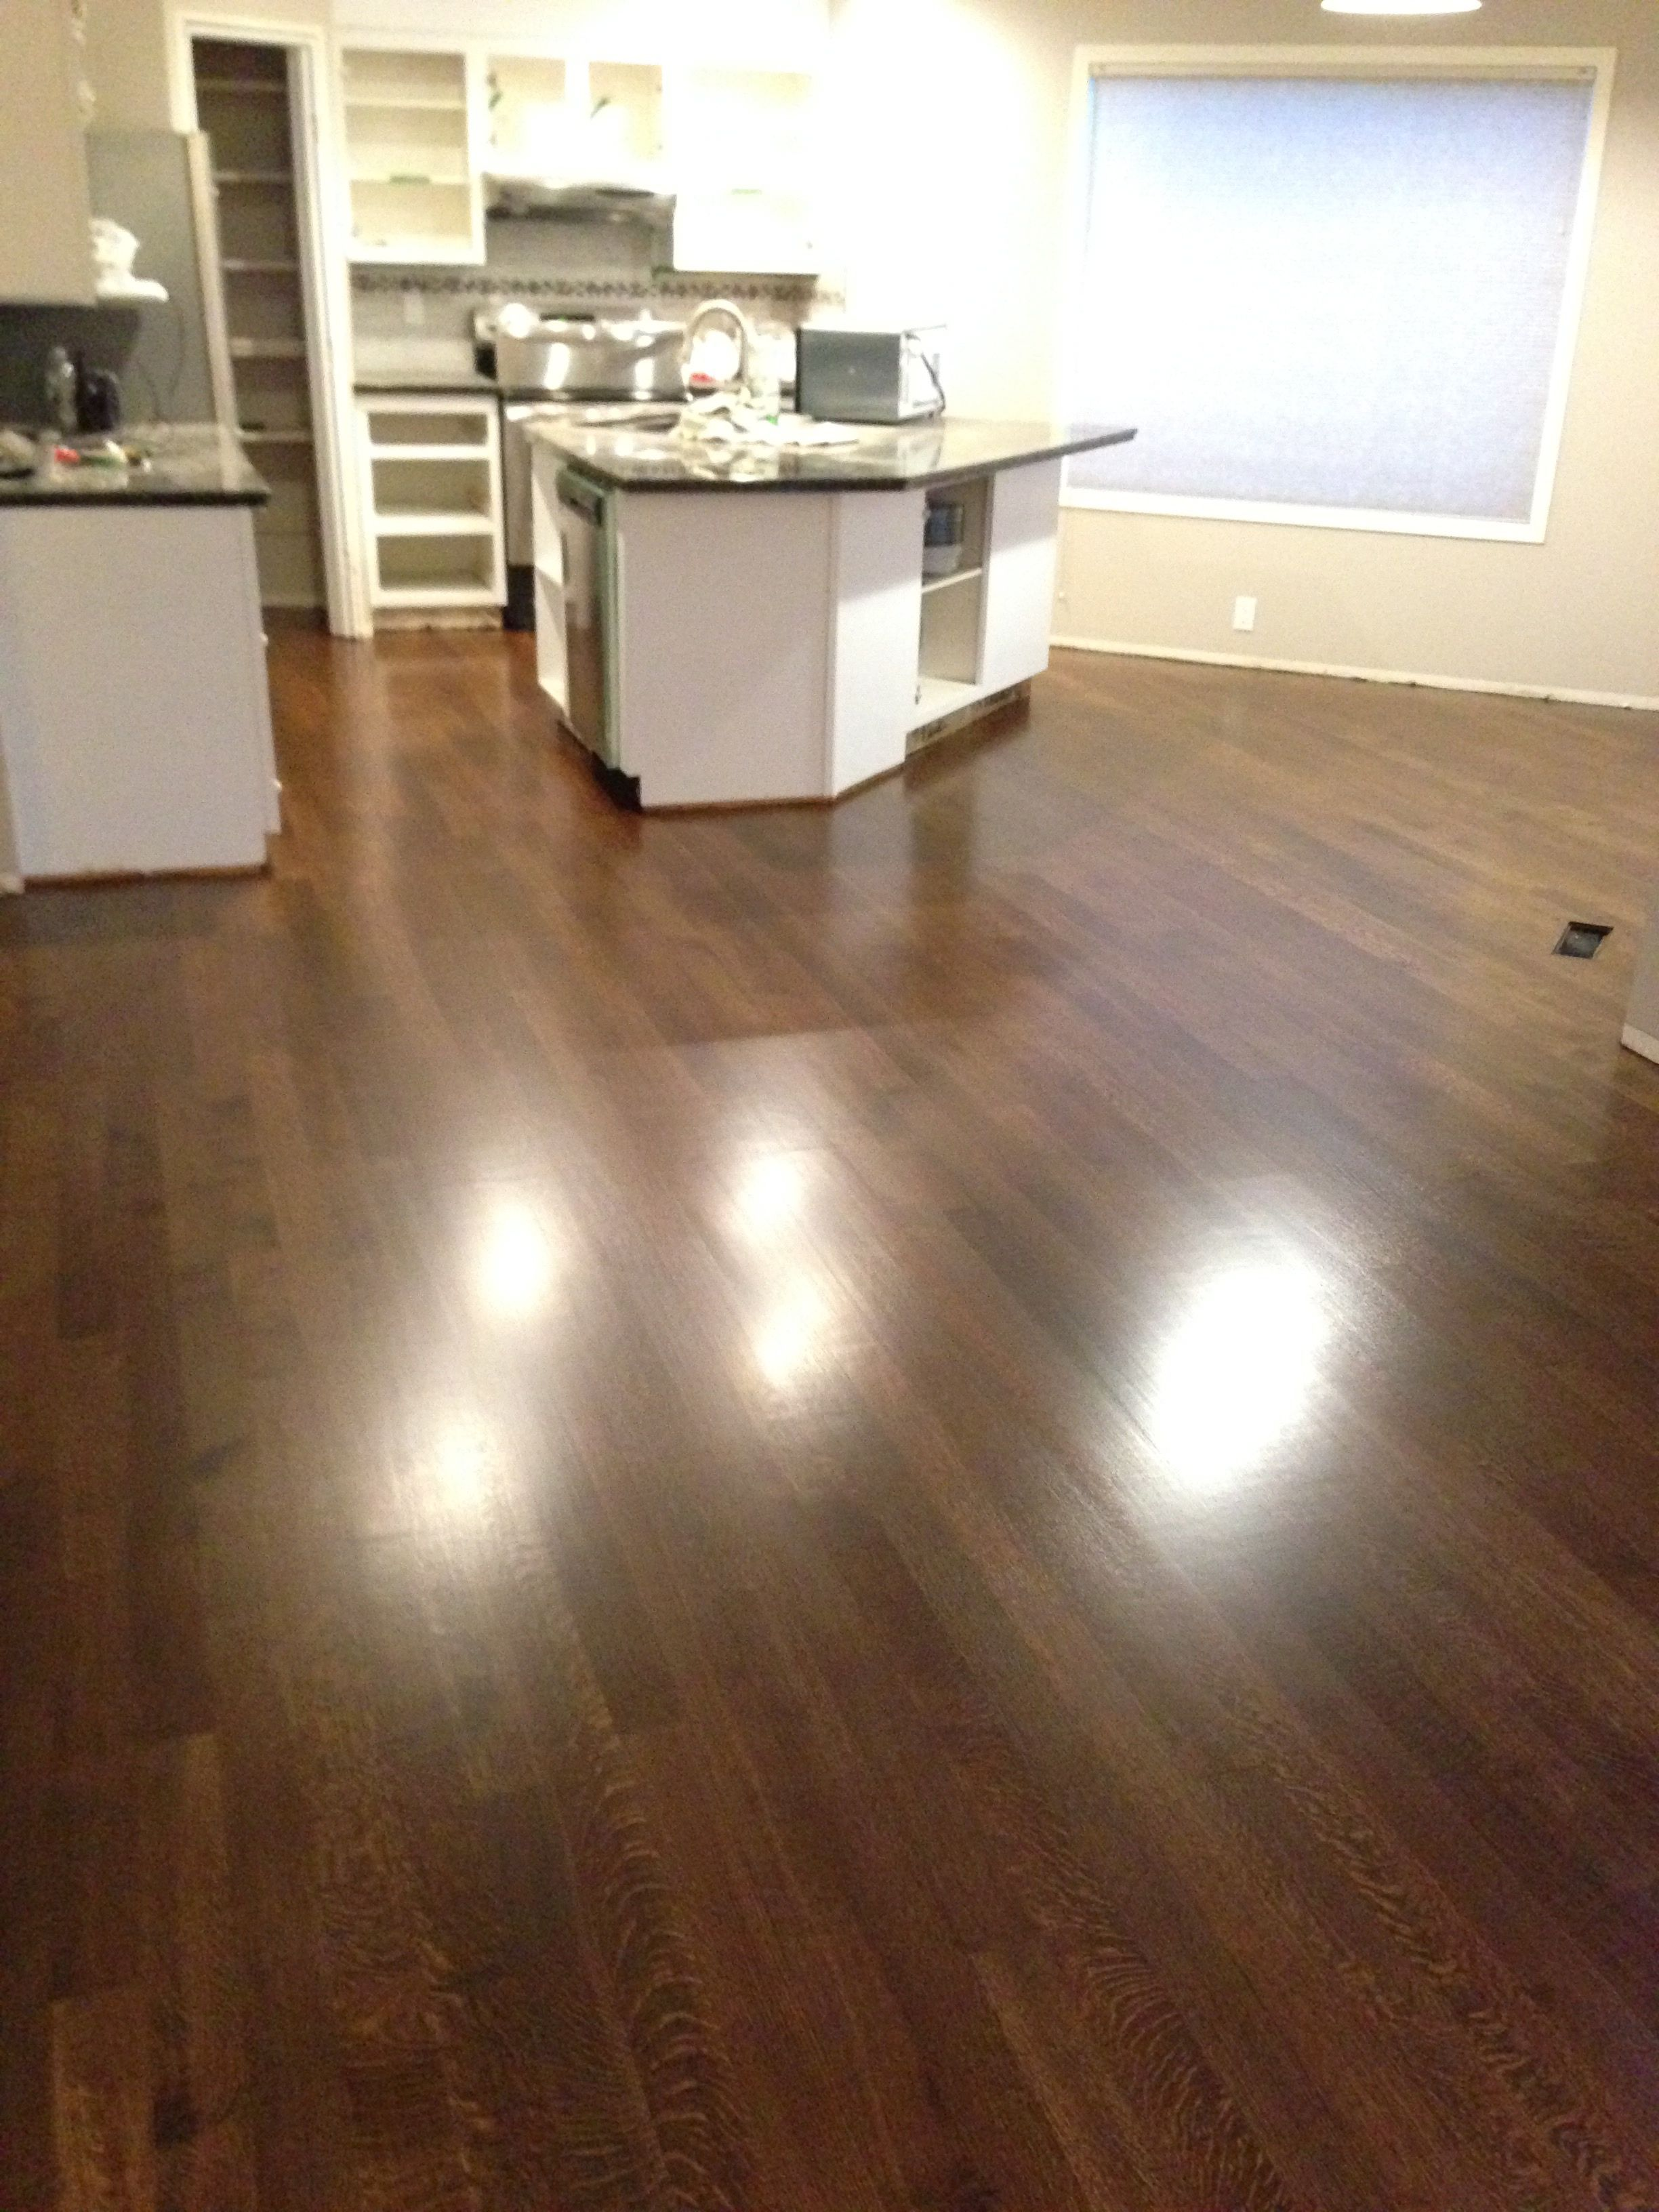 "3 1 4"" rift an quartered white oak Bona stain and Mega satin finish"